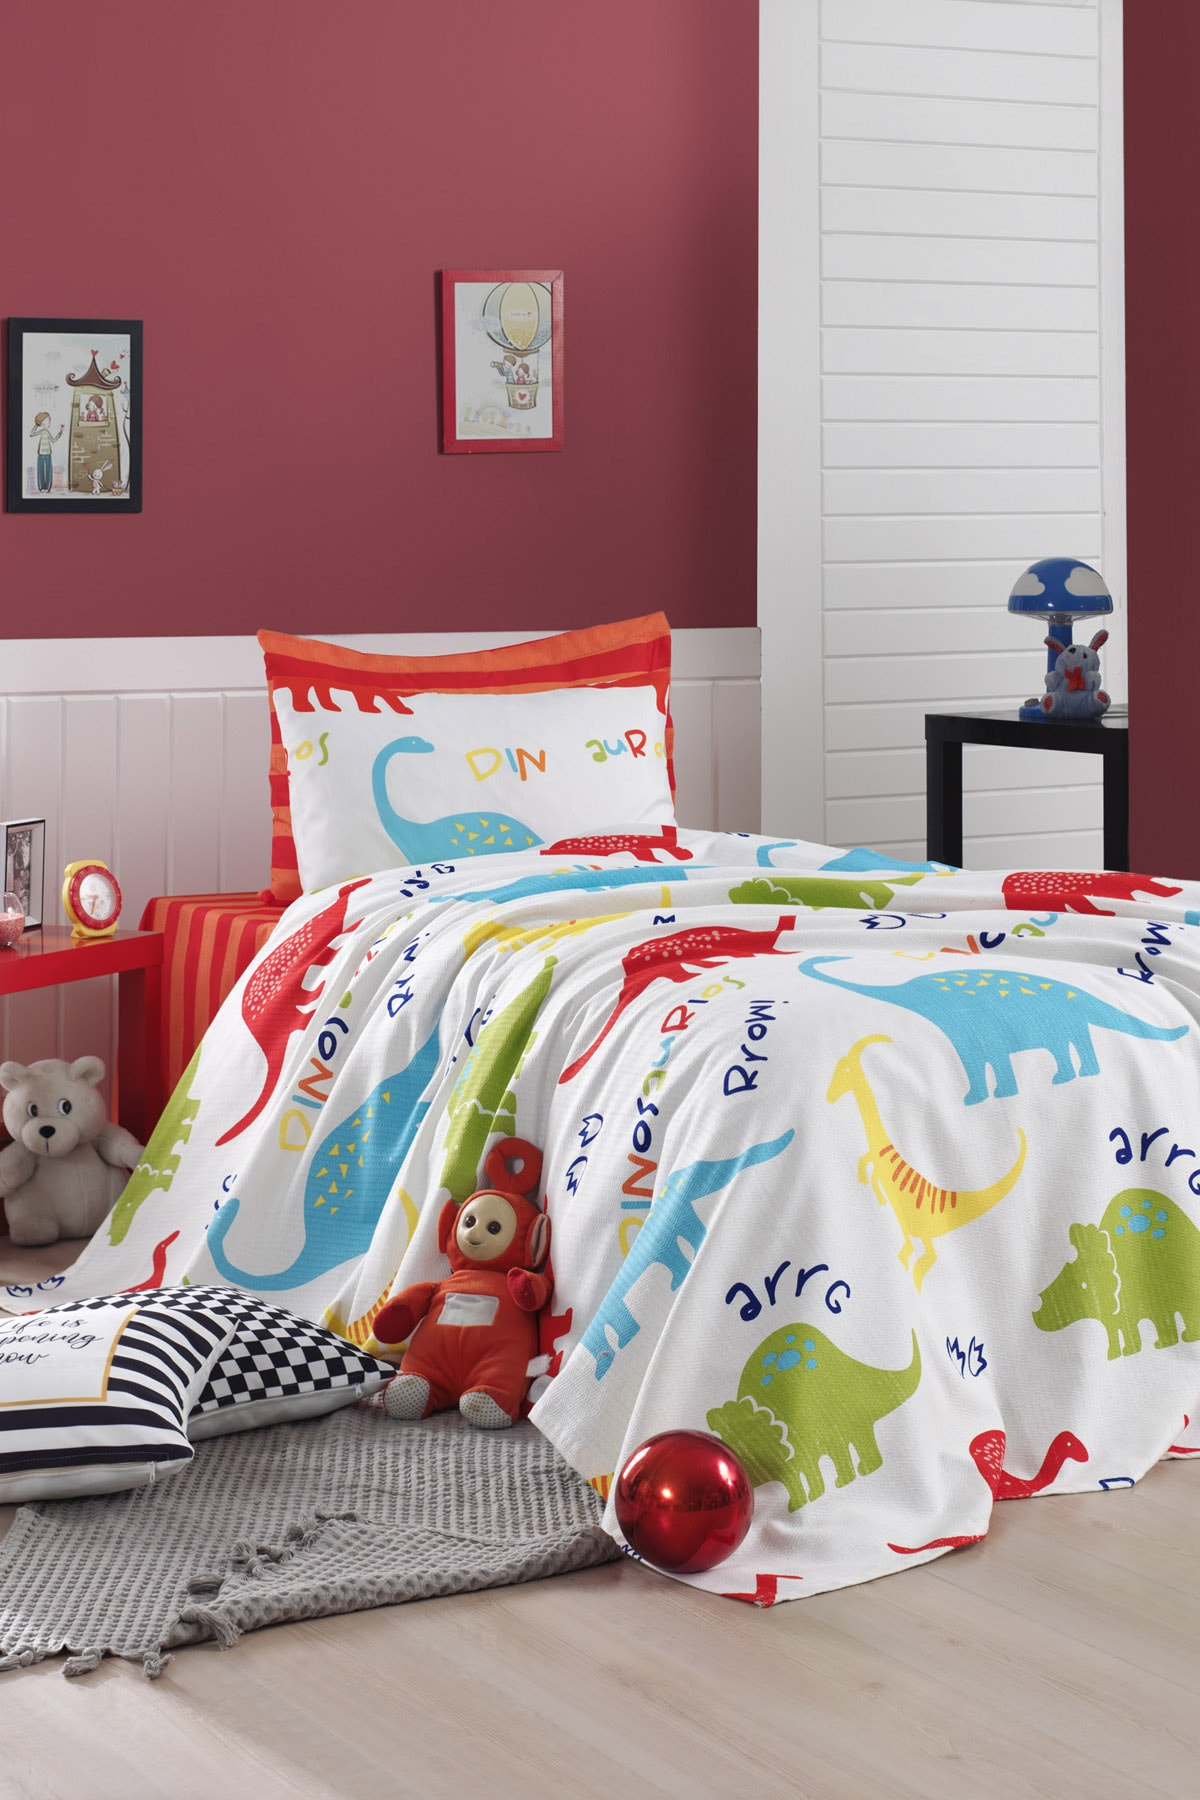 Printed Pike Bed Sheet Pillowcase Set Single Personality Dinazorus White For Kids Fun Educational Health Care Home Gift Happiness